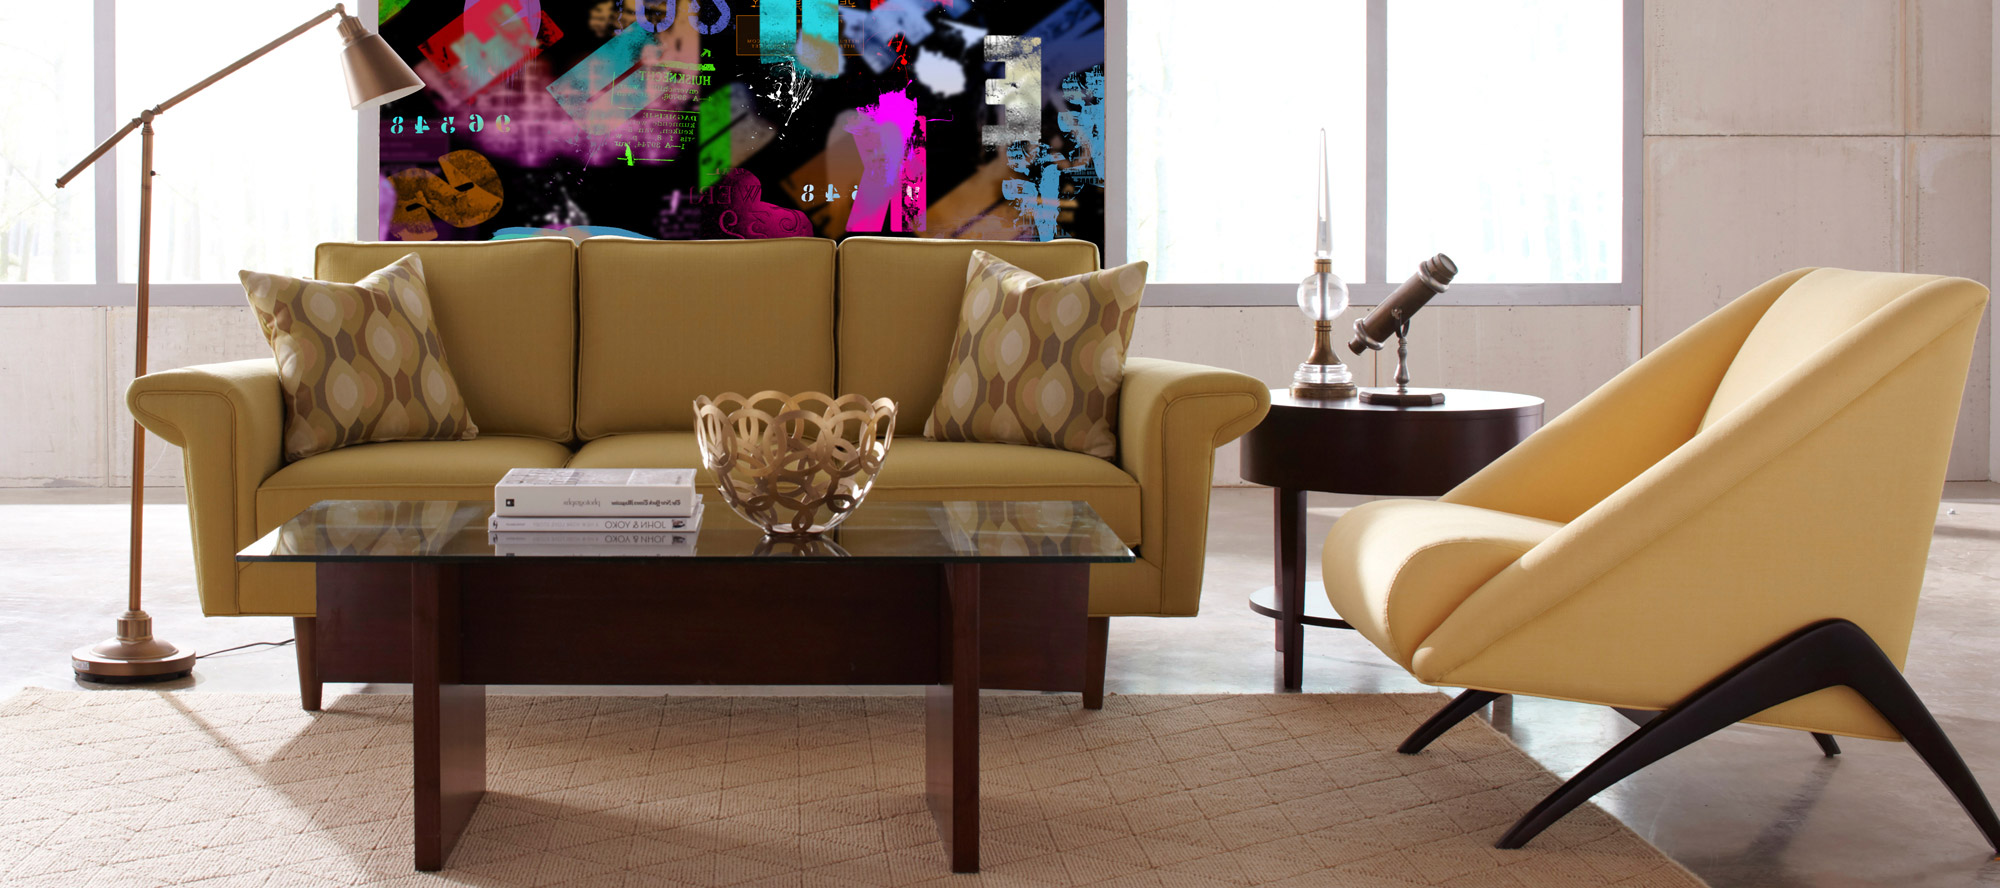 D'infinity, Abstrakt Kreatif Laminates For Drawing Room-Sundek International